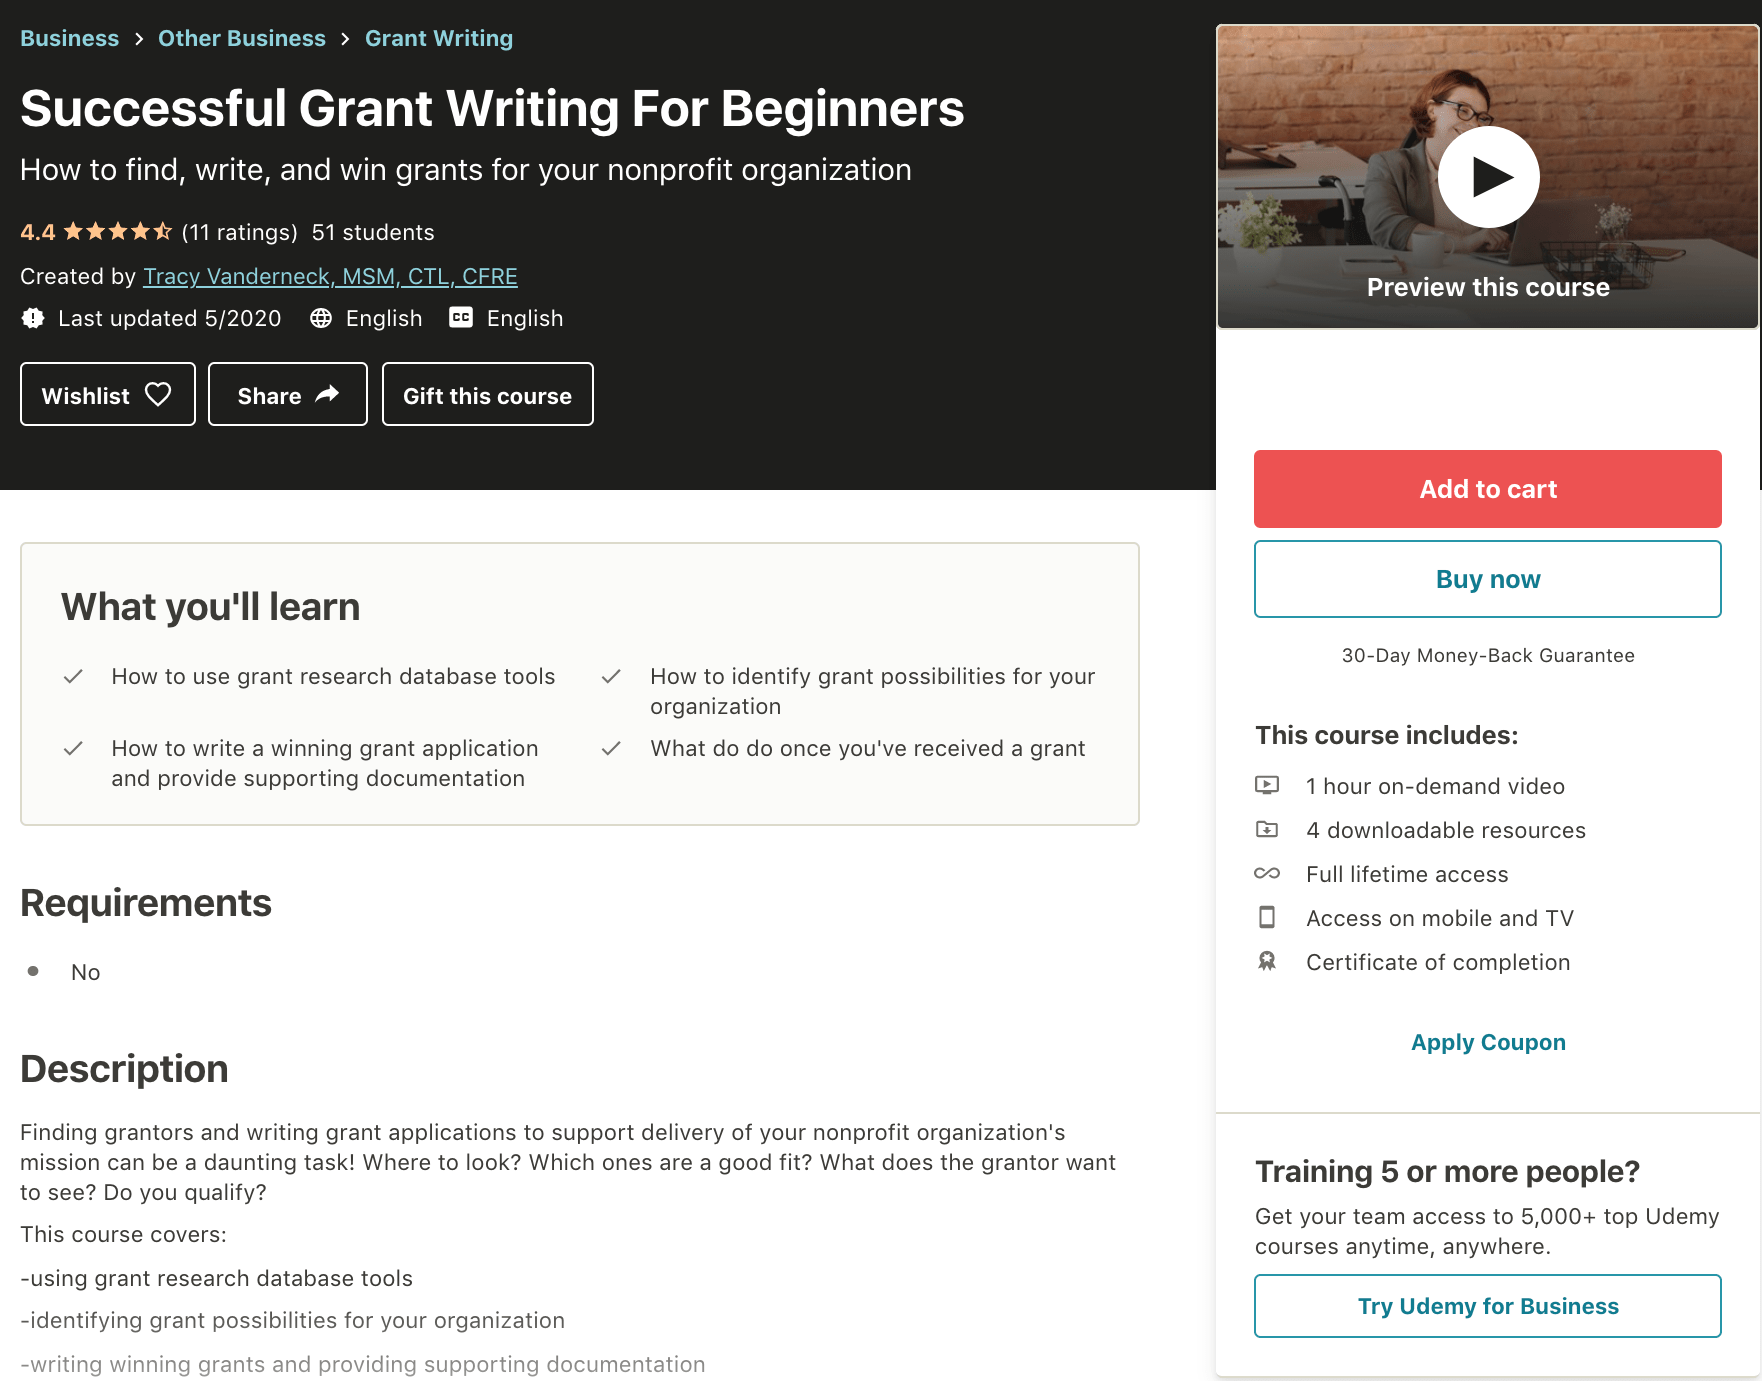 Successful-Grant-Writing-For-Beginners-Udemy